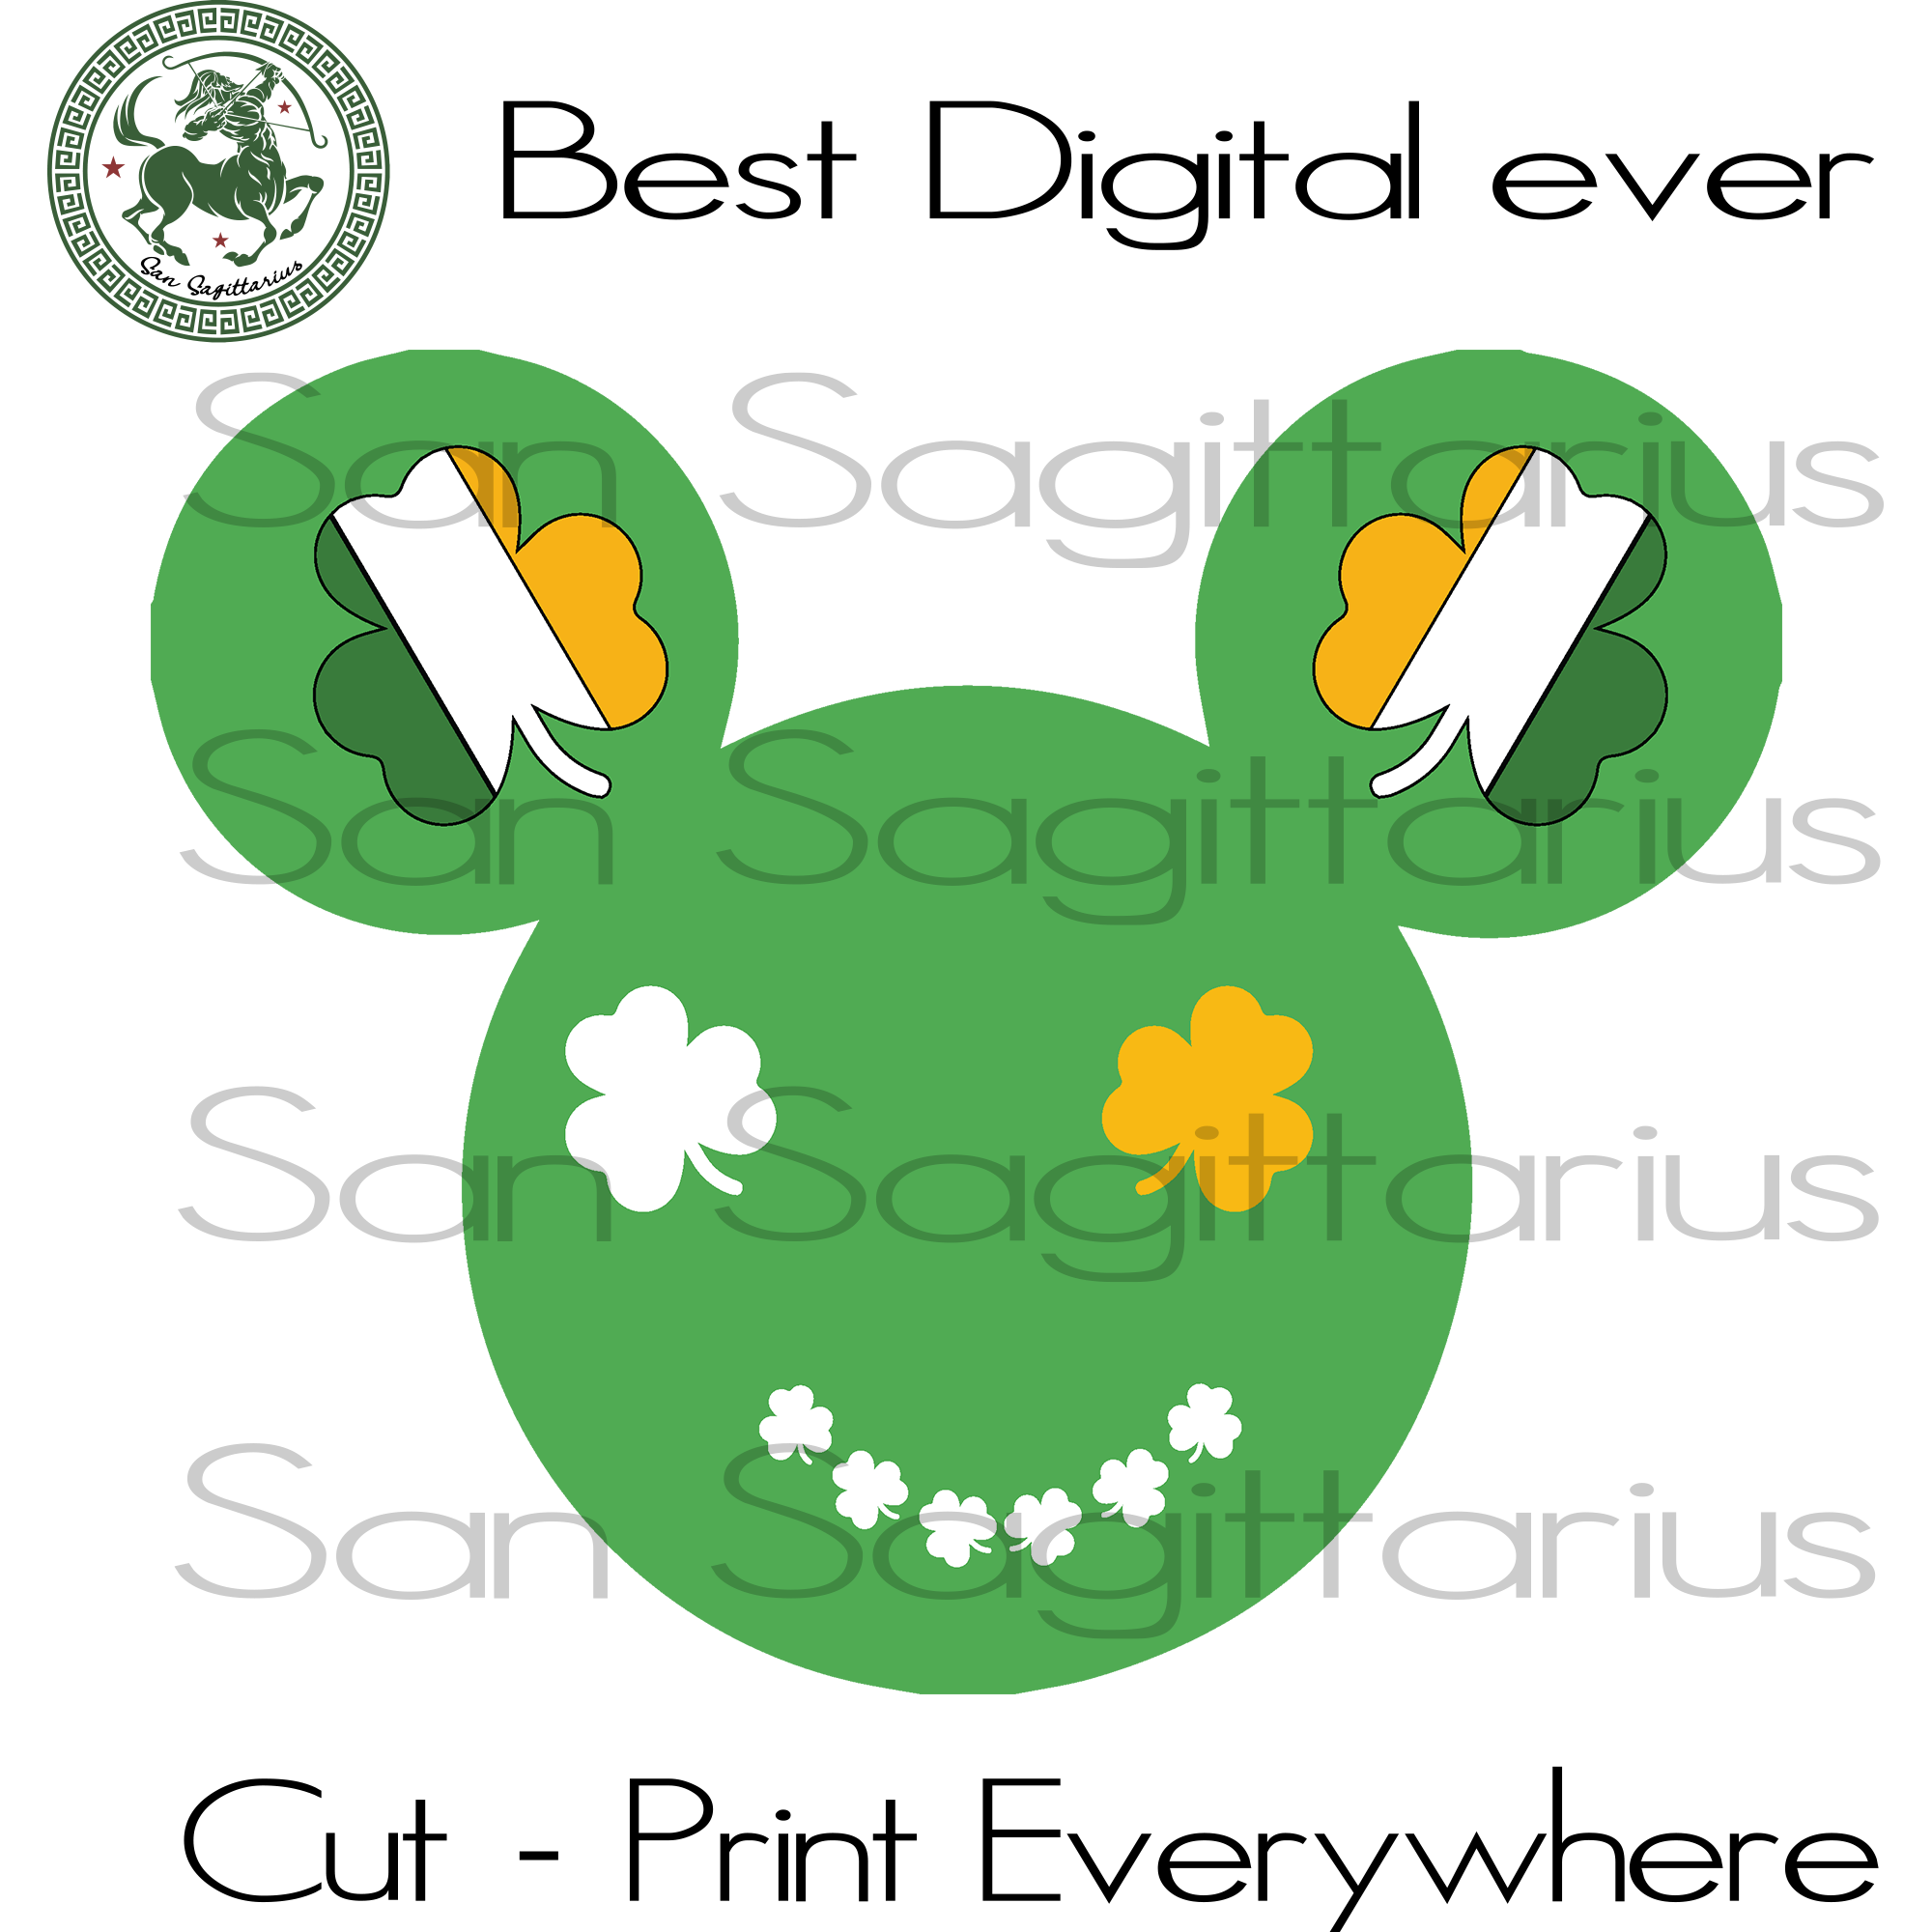 Mickey Svg, Happy Patrick's Day, Disney Mickey Svg, Three Leaves Clover,Disney World Mickey Mouse Bundle Castle SVG Files For Cricut Silhouette Instant Download | San Sagittarius